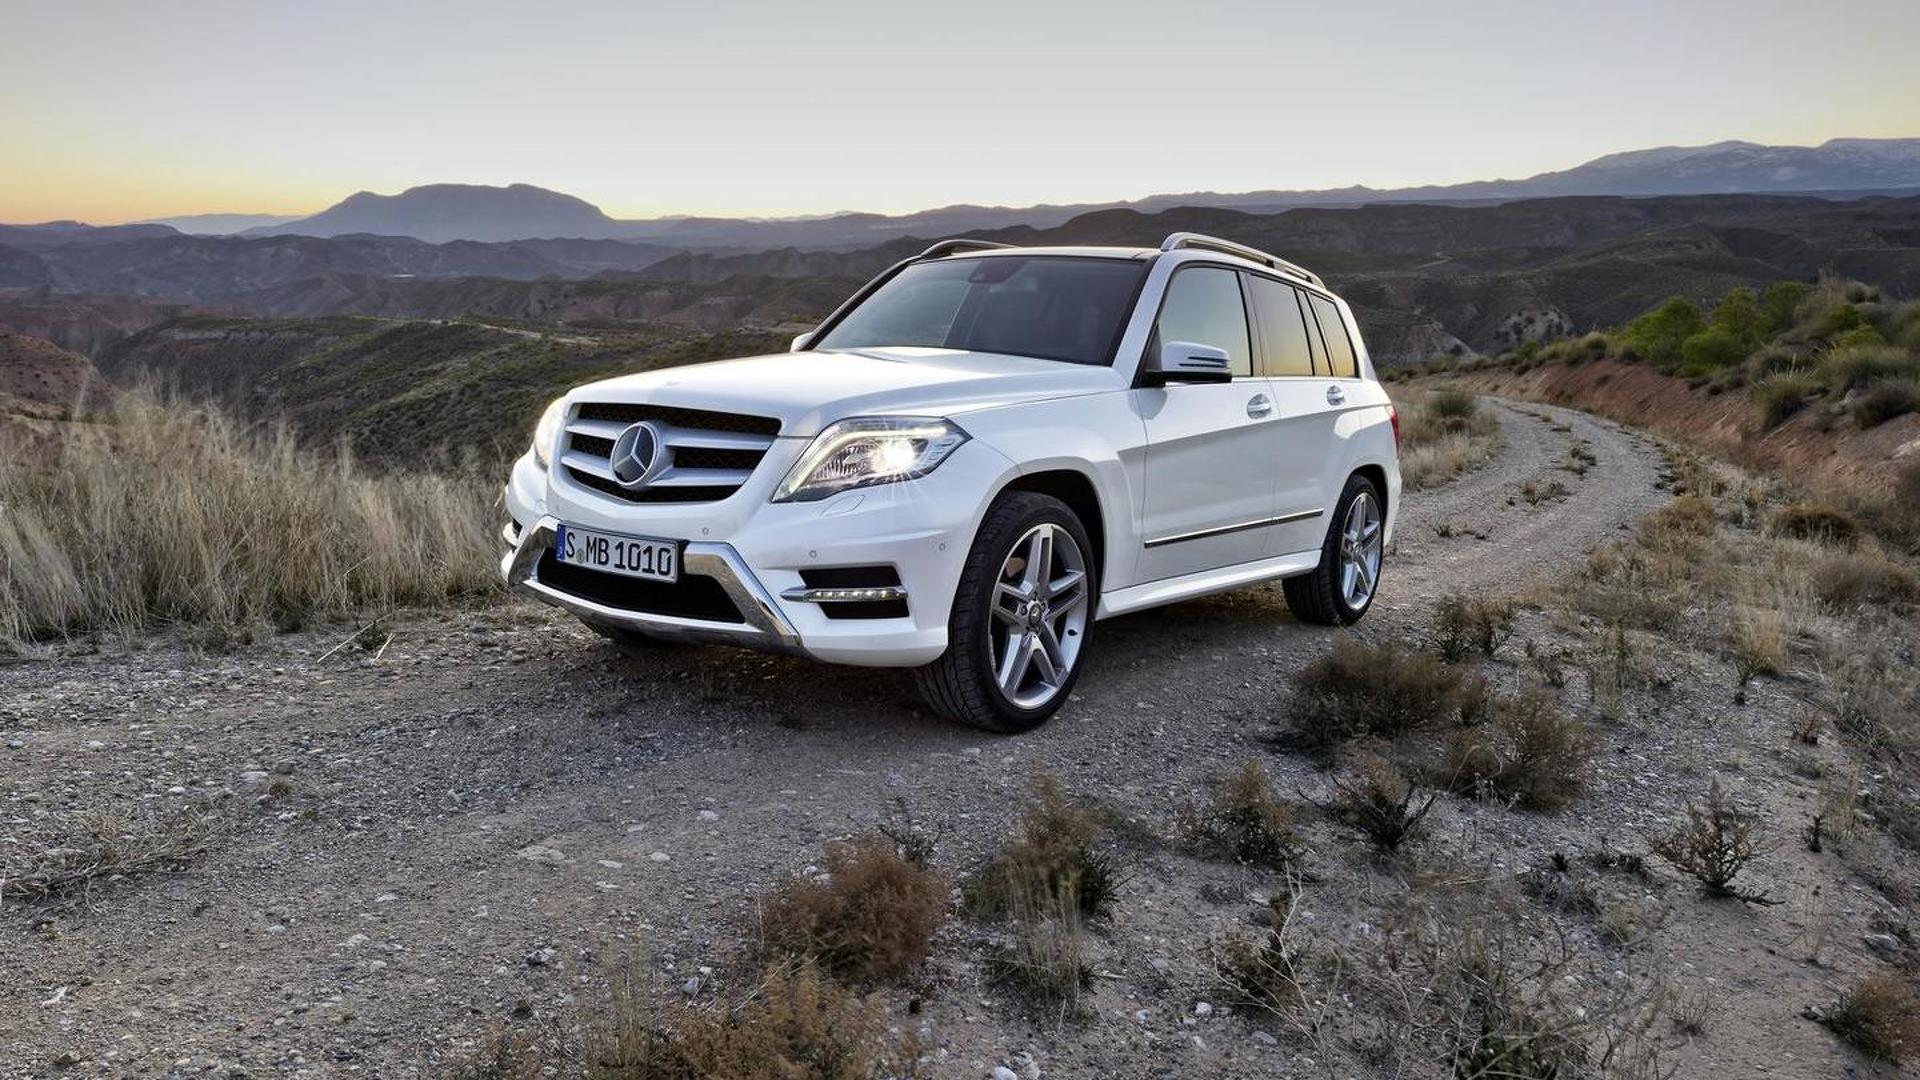 Mercedes GLK 250 4MATIC announced